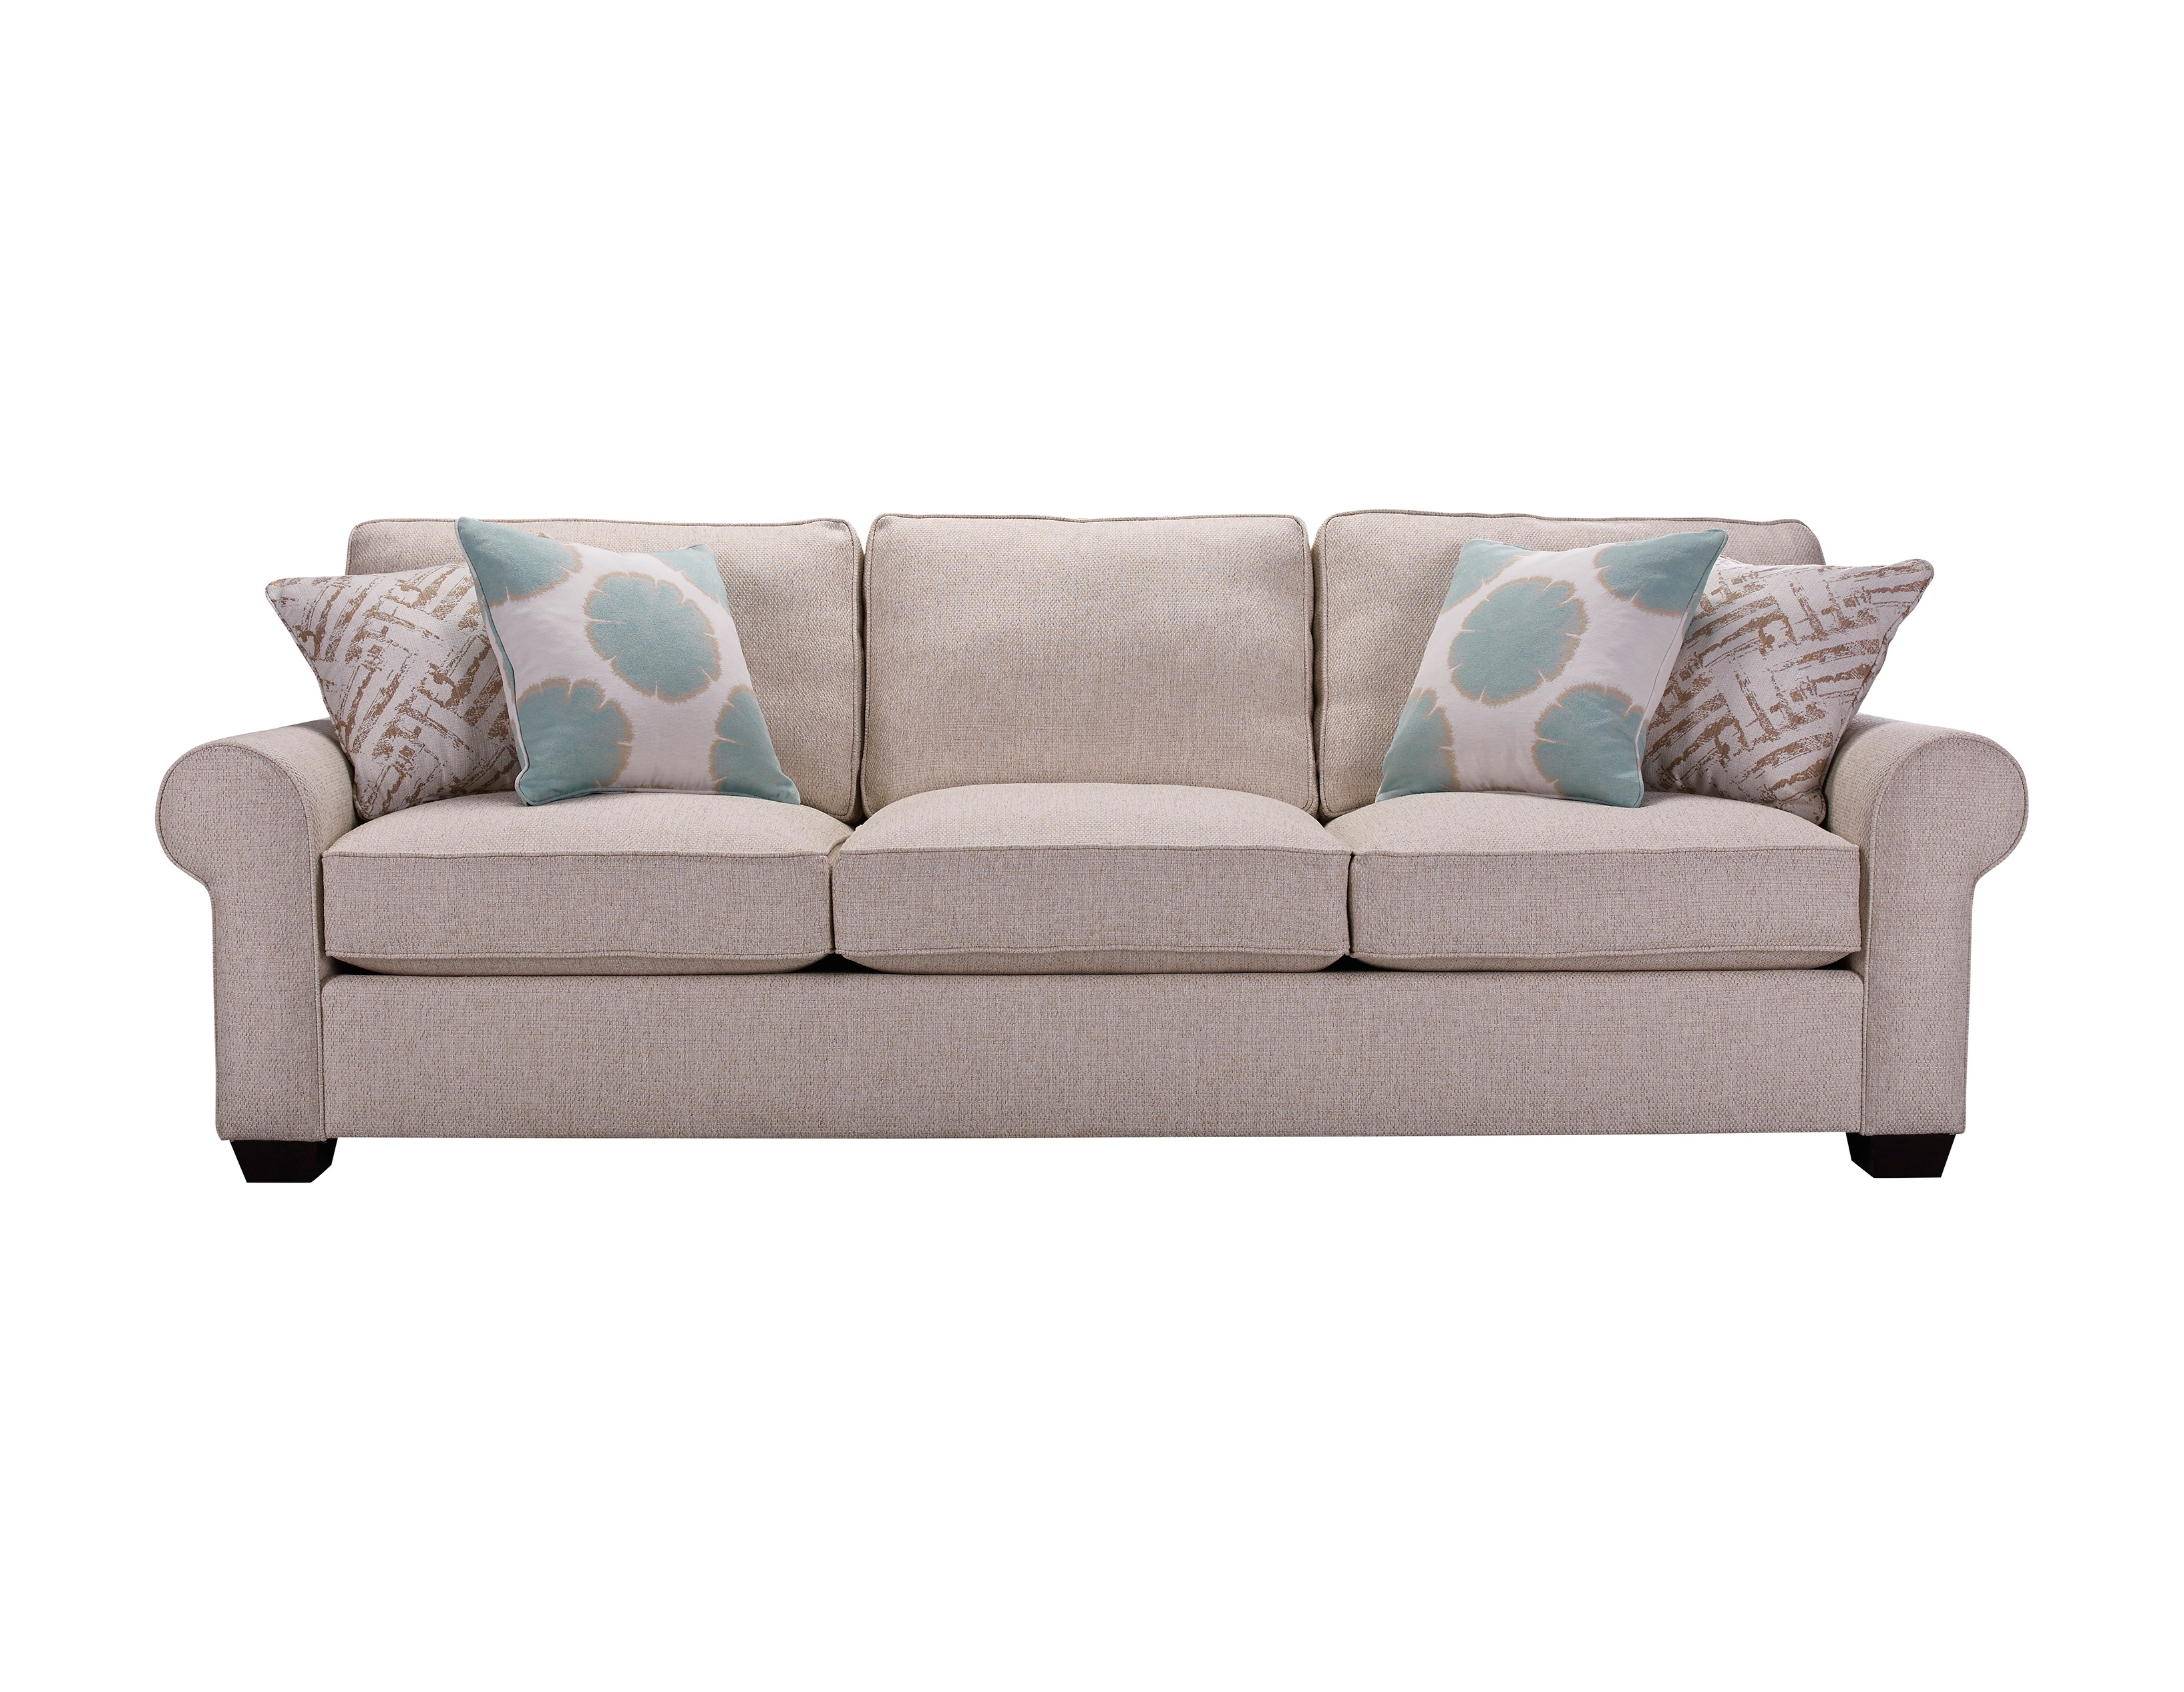 Admirable Isadore 4272 Sofa Collection Customize 350 Sofas And Alphanode Cool Chair Designs And Ideas Alphanodeonline